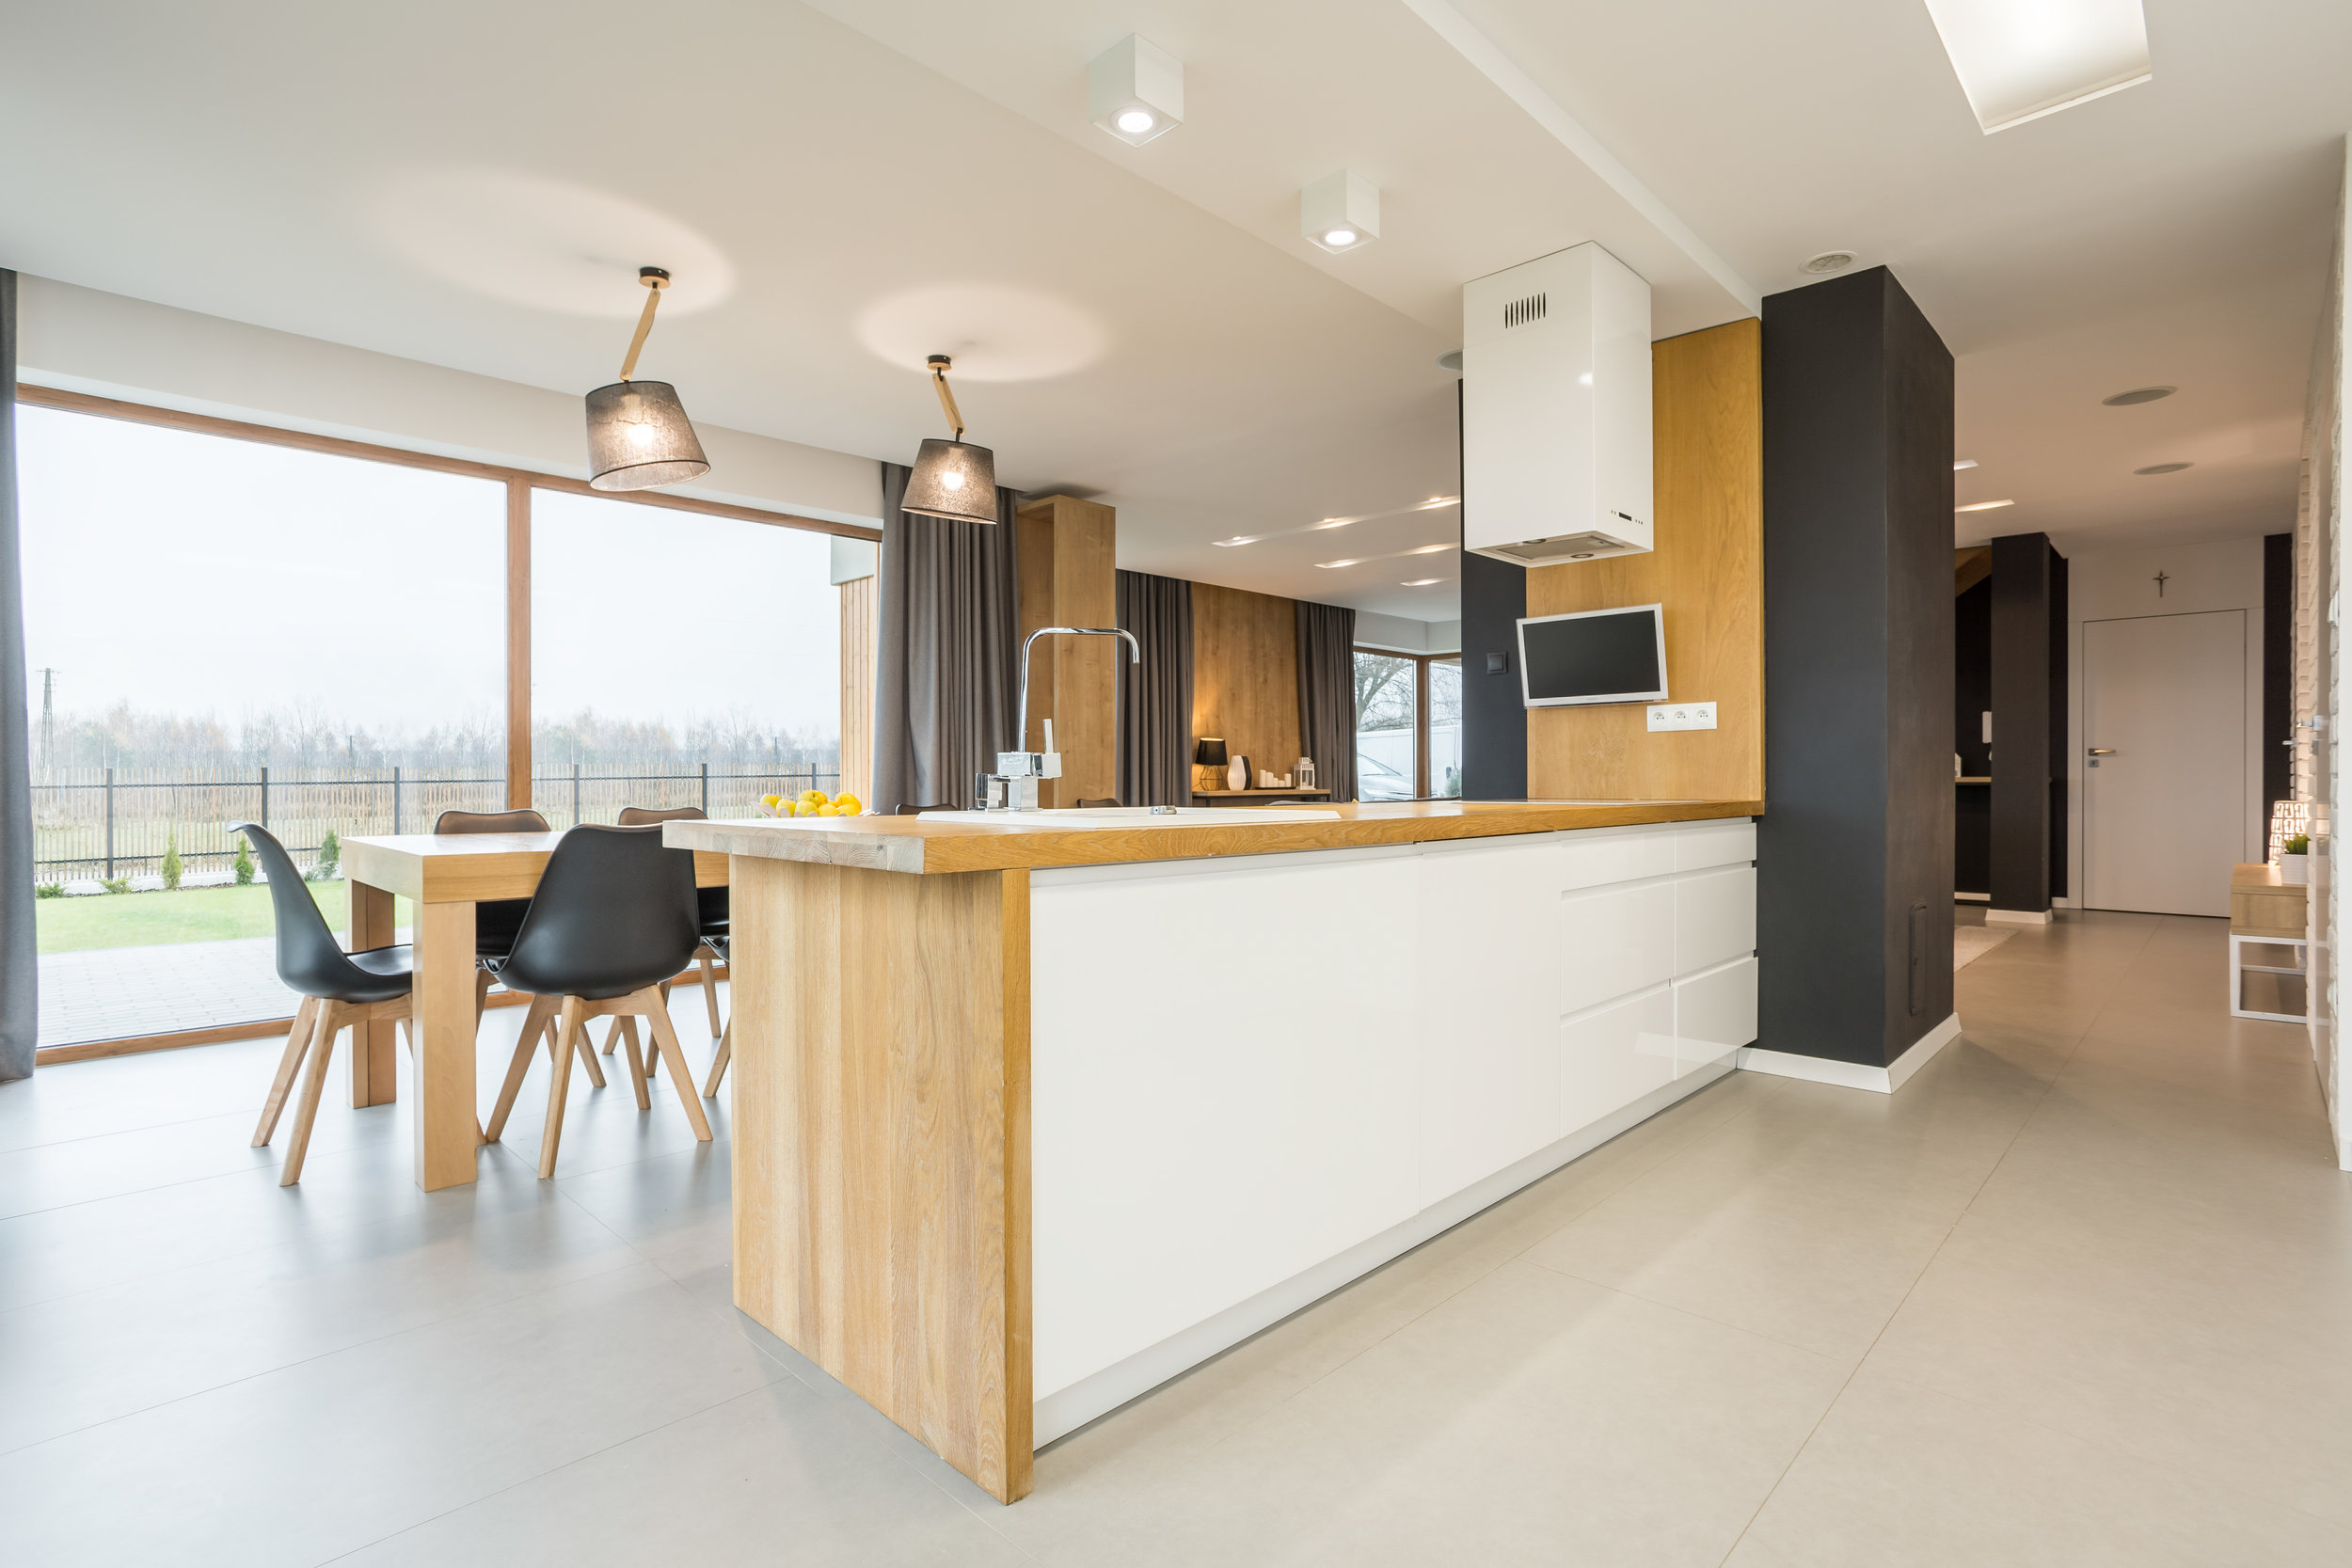 kitchen-with-dining-area-PCXUV4W.jpg